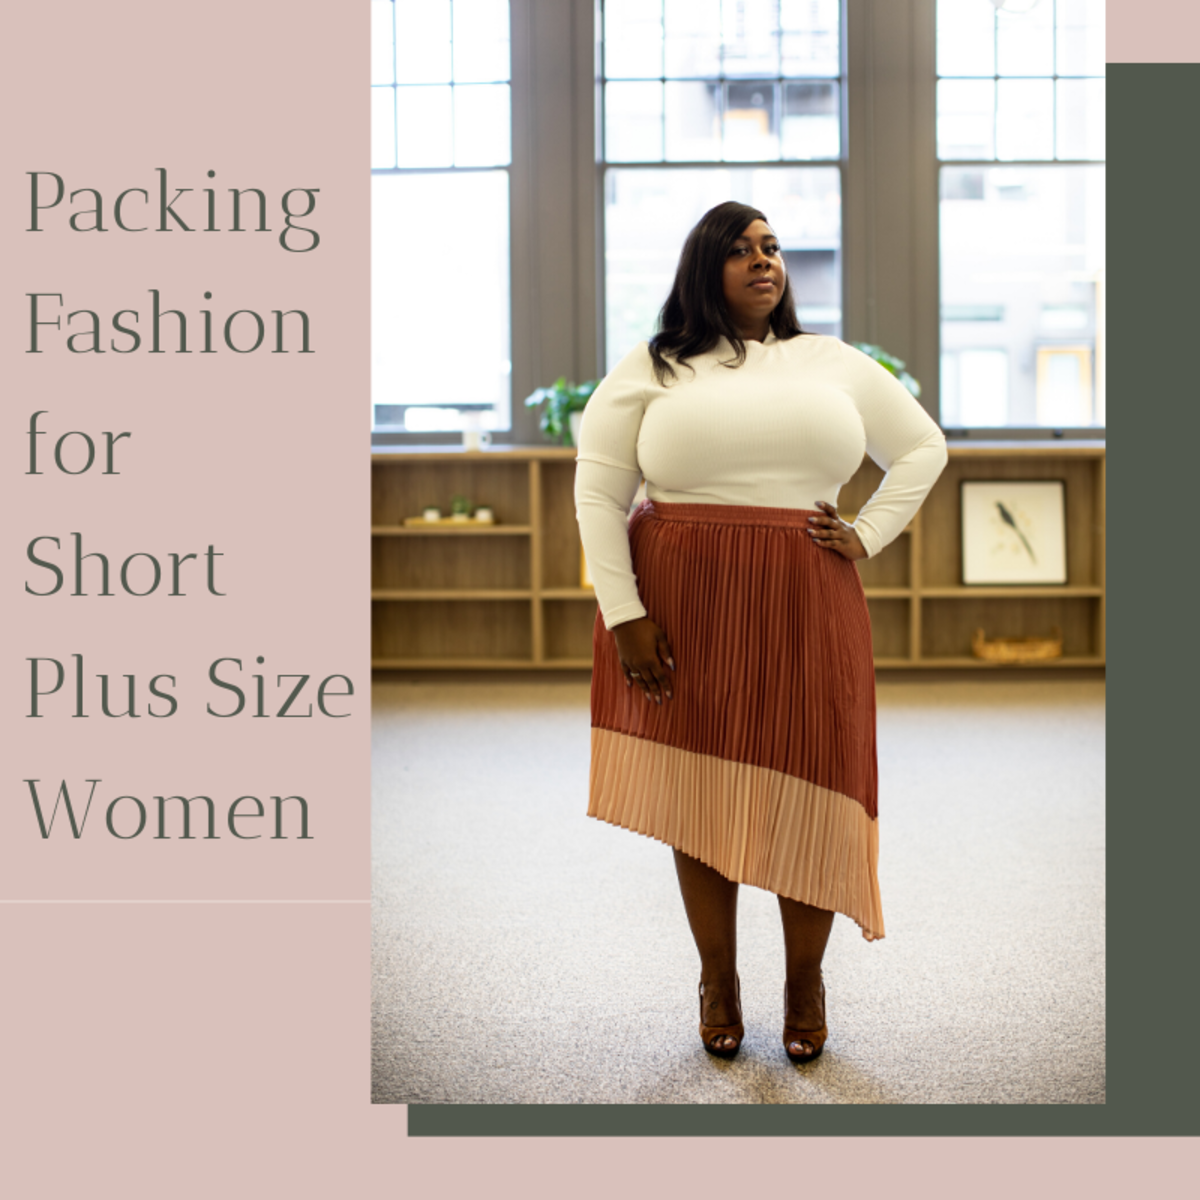 Short, Fat and Mobile: Packing Fashion for Plus Size Petite Women Who Travel Light